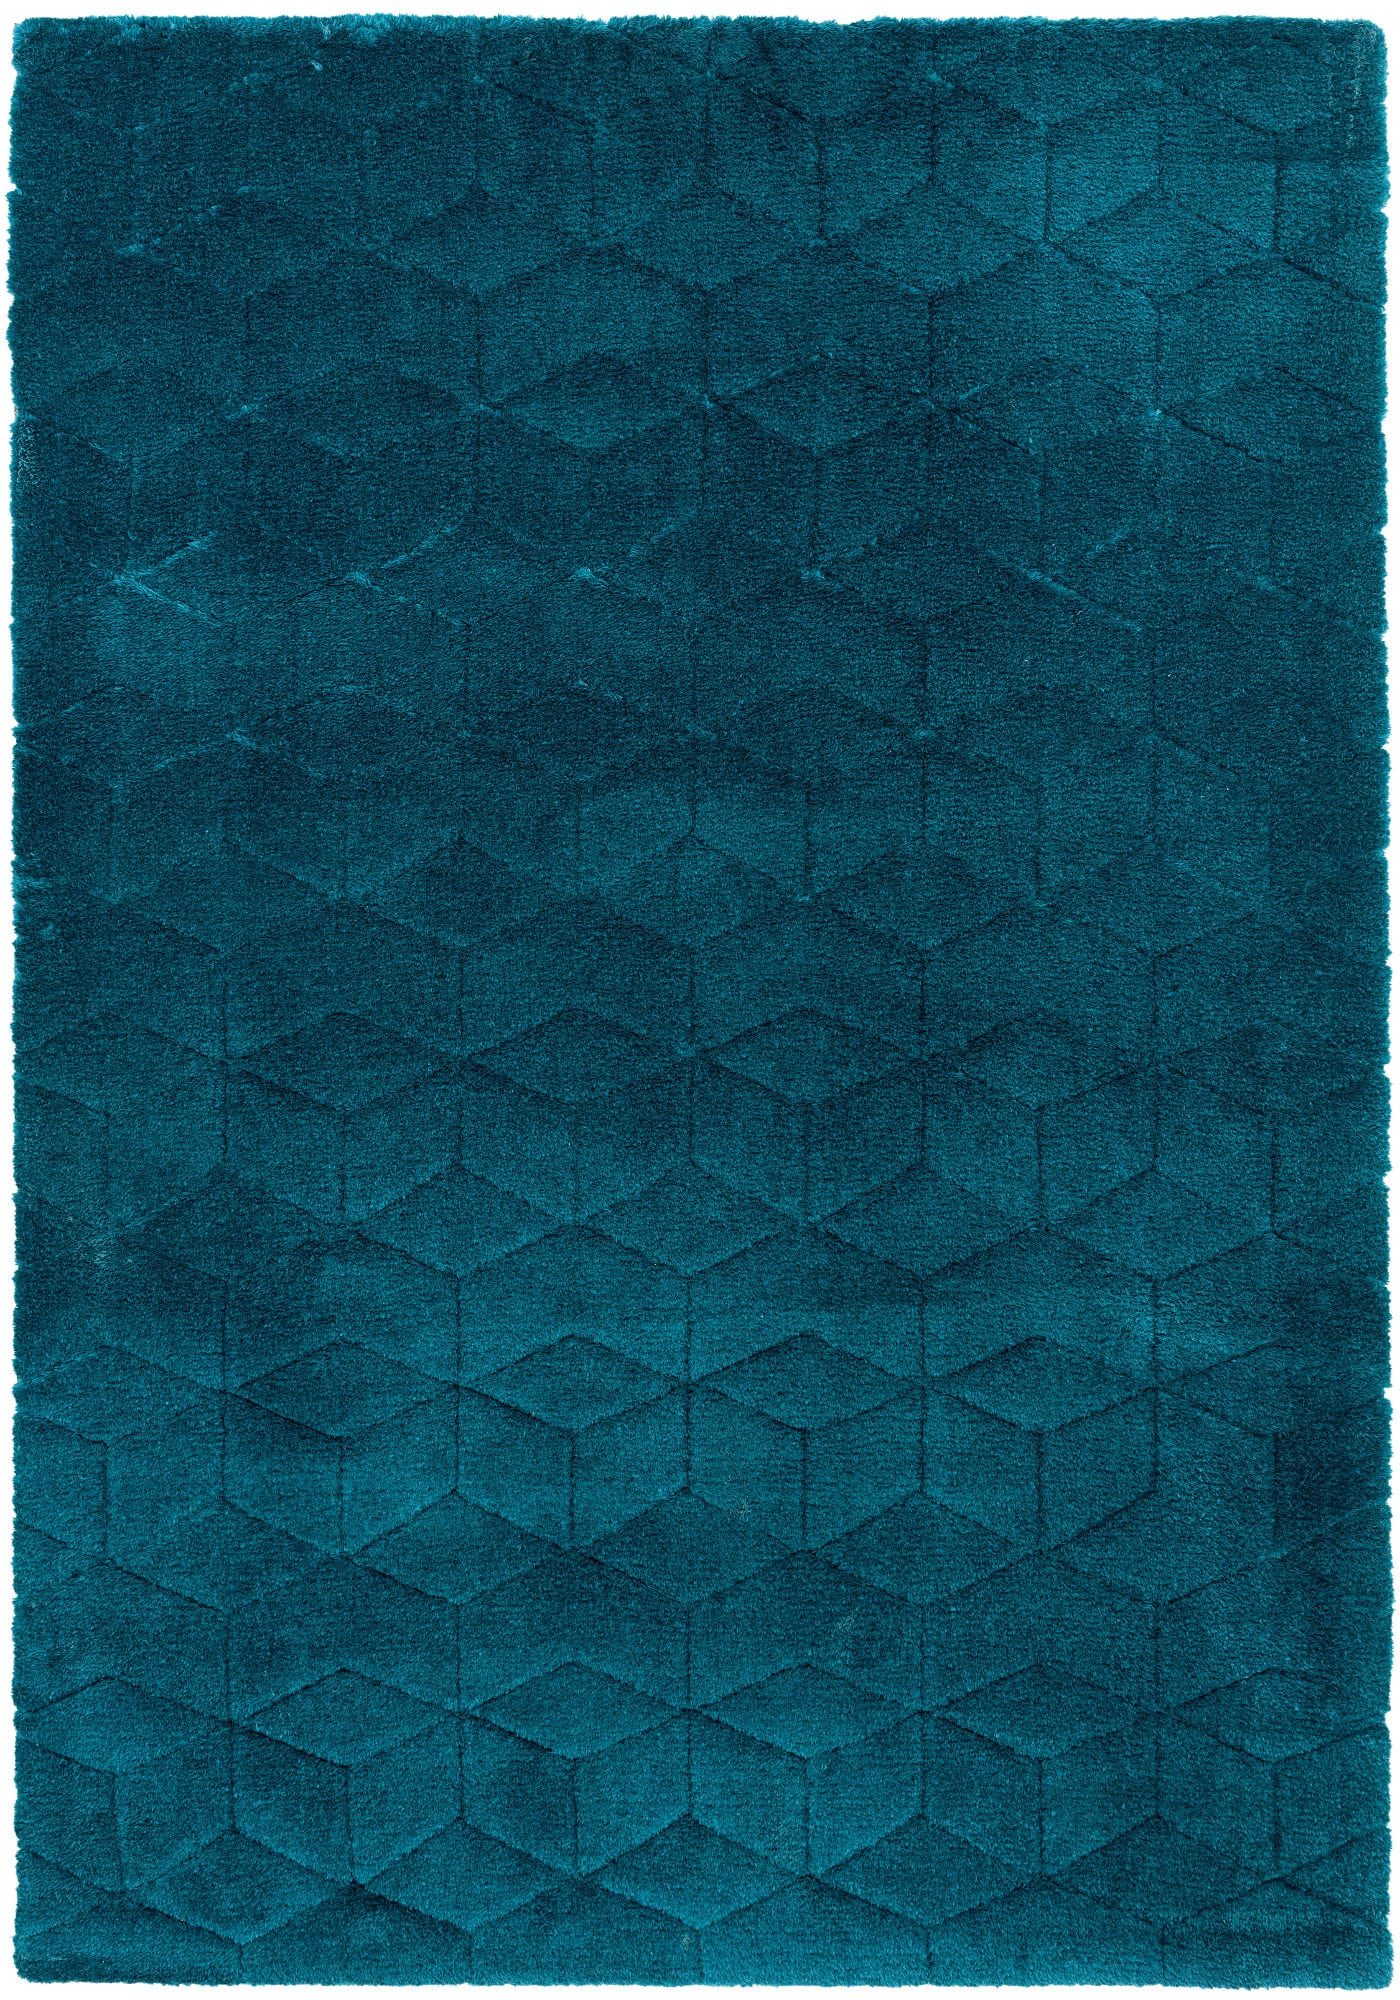 Cozy Rug By Asiatic Carpets Colour Teal Rugs Uk